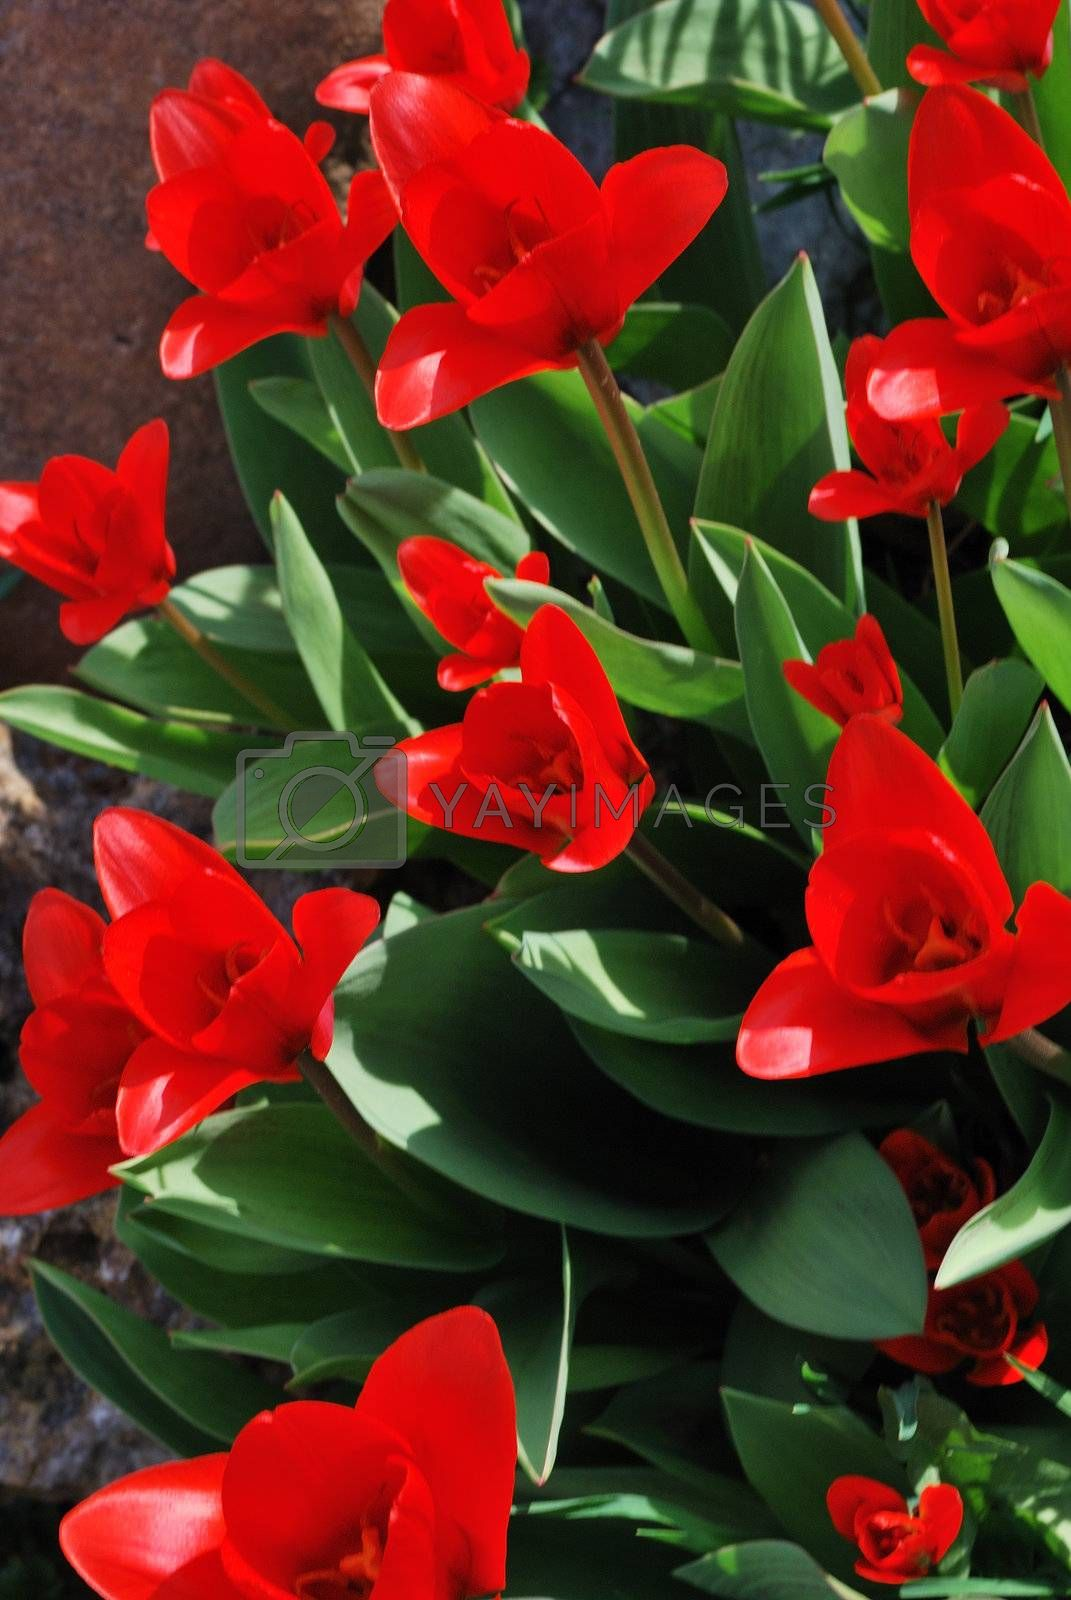 lot of red tulip flower in the spring